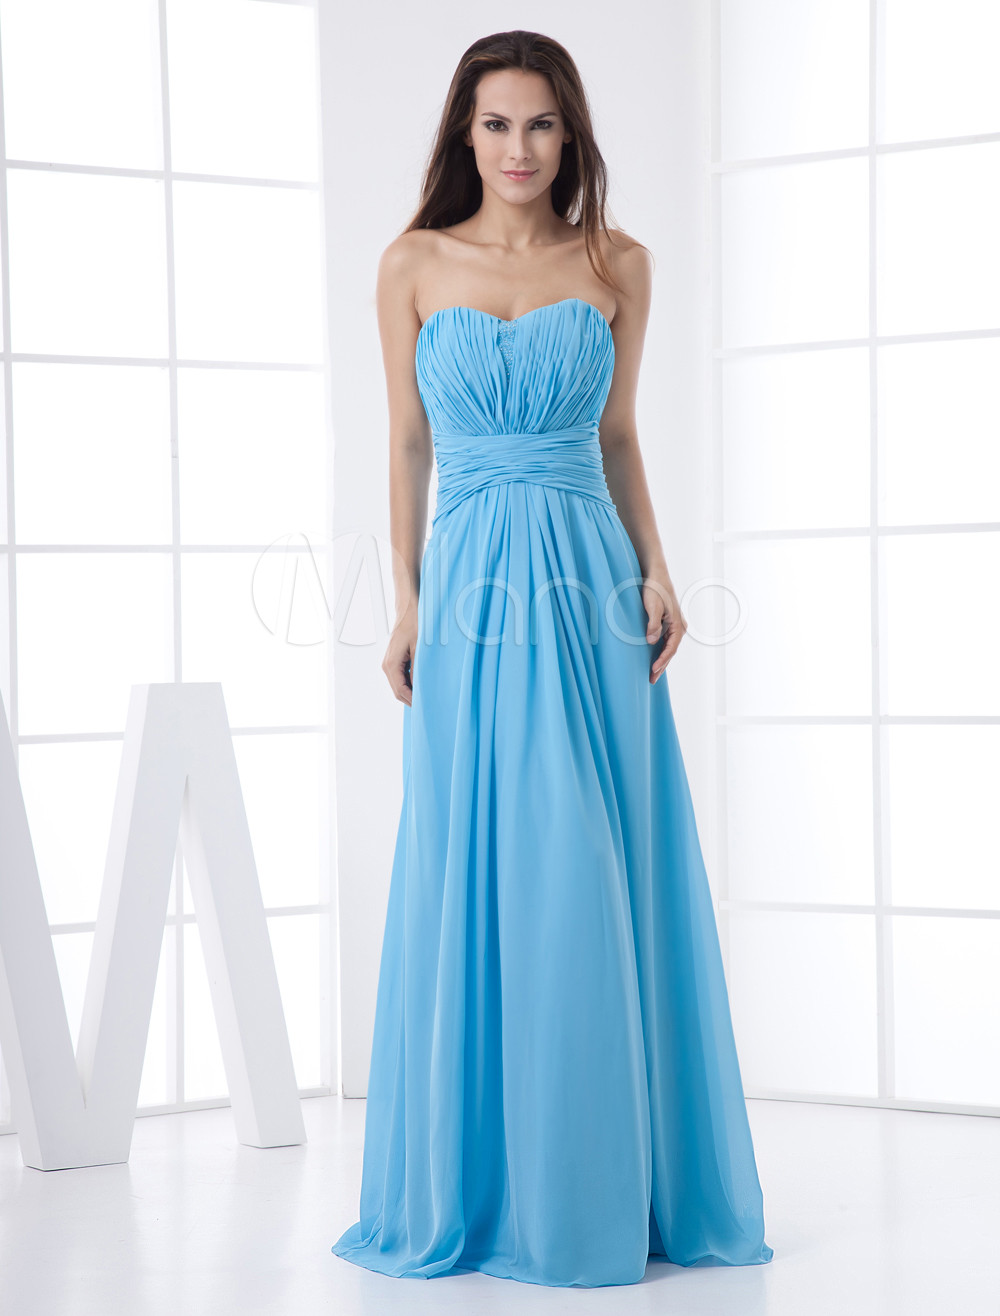 Light Sky Blue Chiffon Draped Sweetheart Neck Wedding Bridesmaid Dress